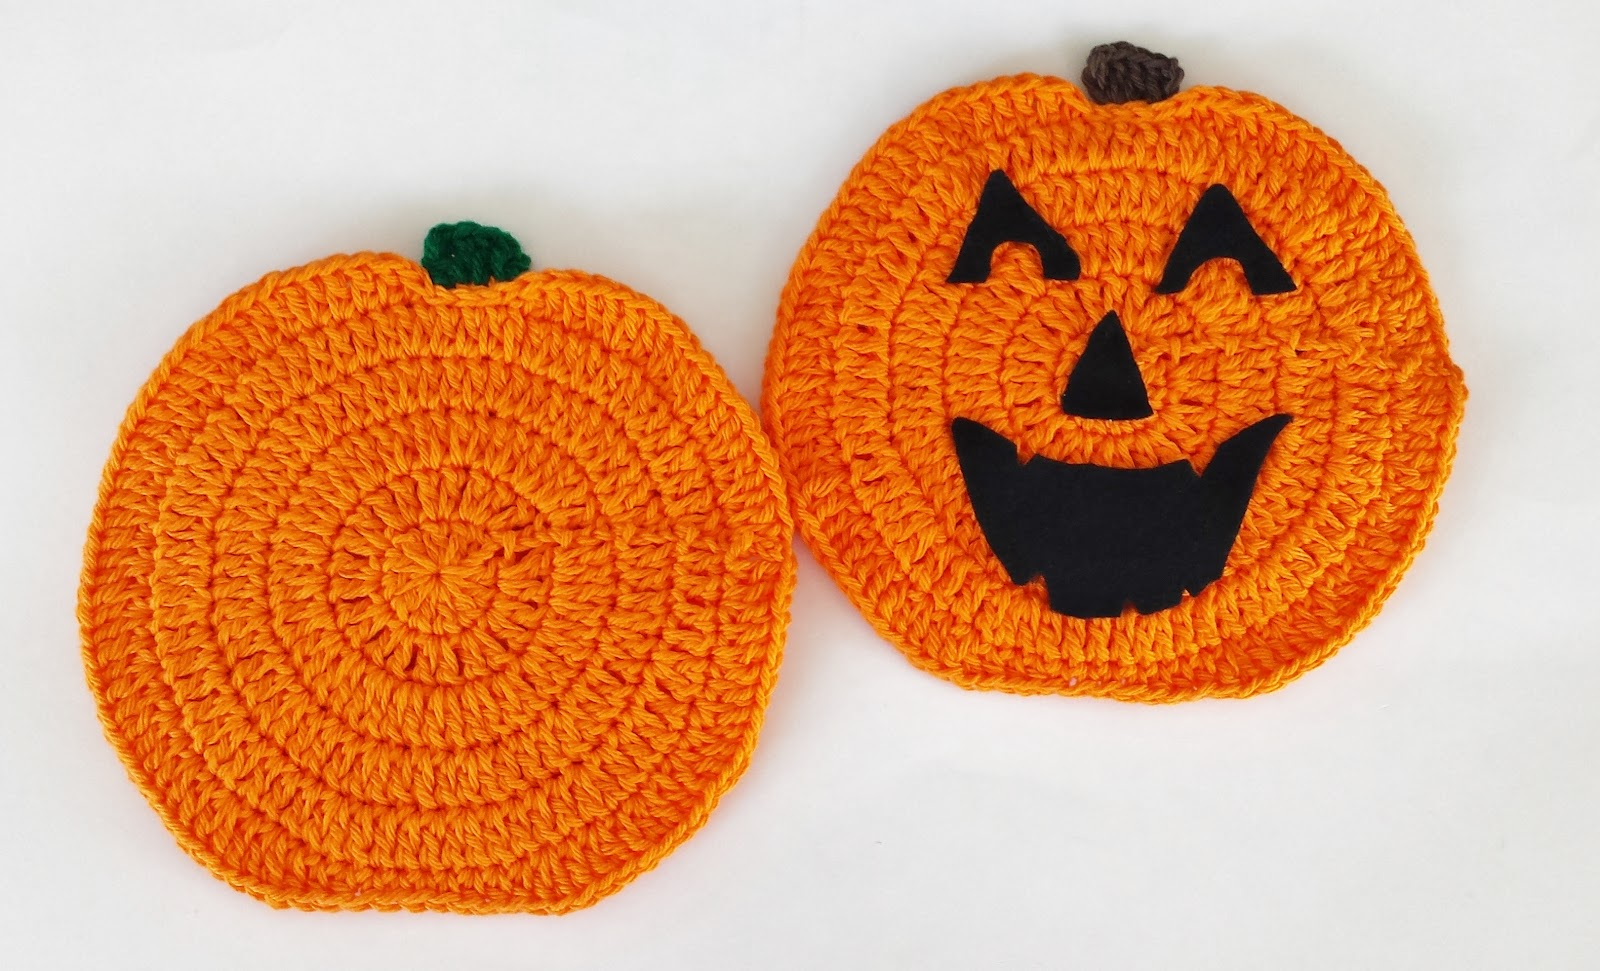 FALL PUMPKIN HOT PAD 10-2015.jpg